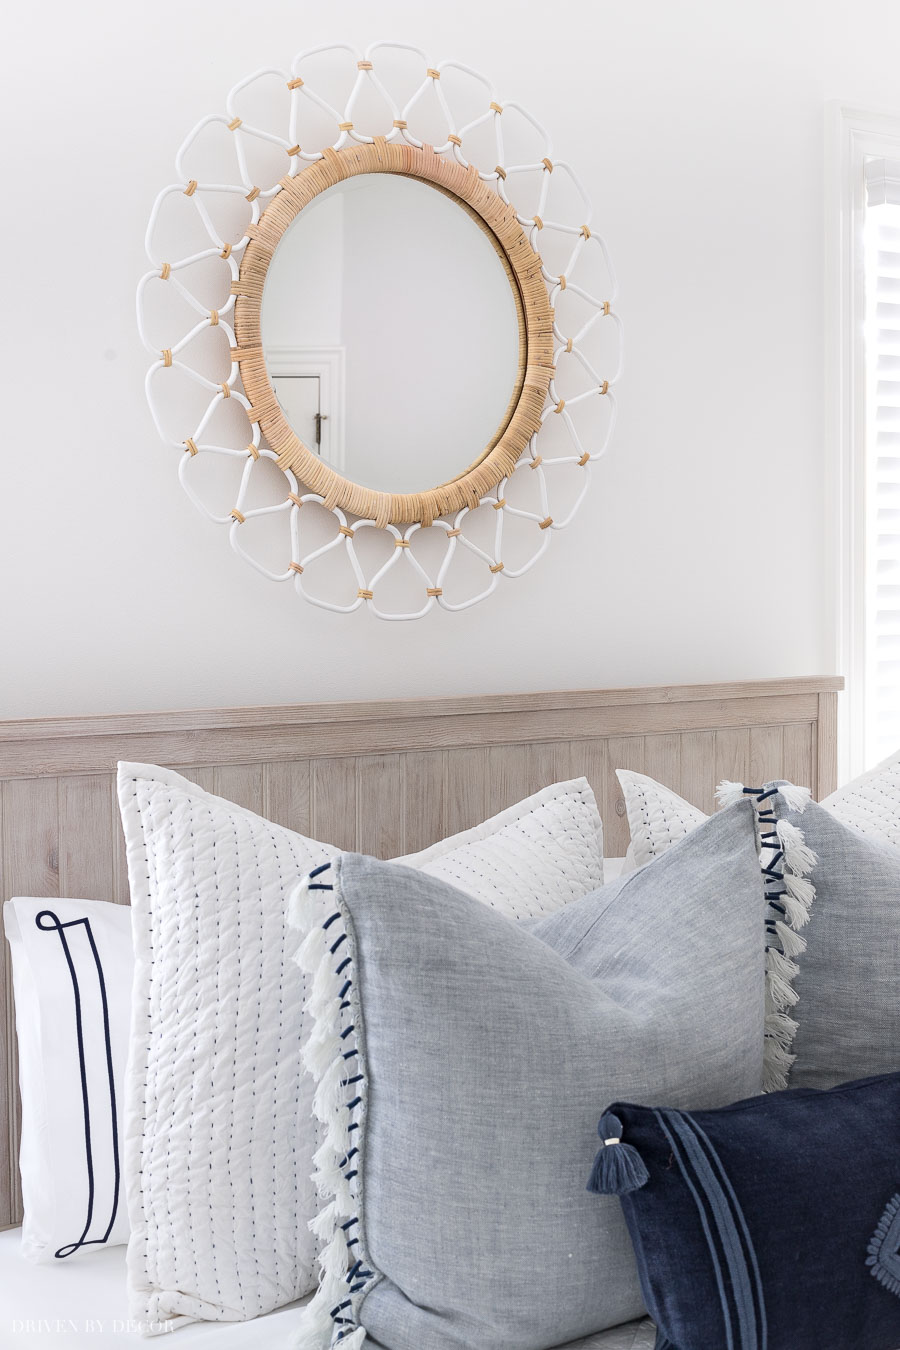 The perfect mirror for above a bed! Love the two-toned rattan!